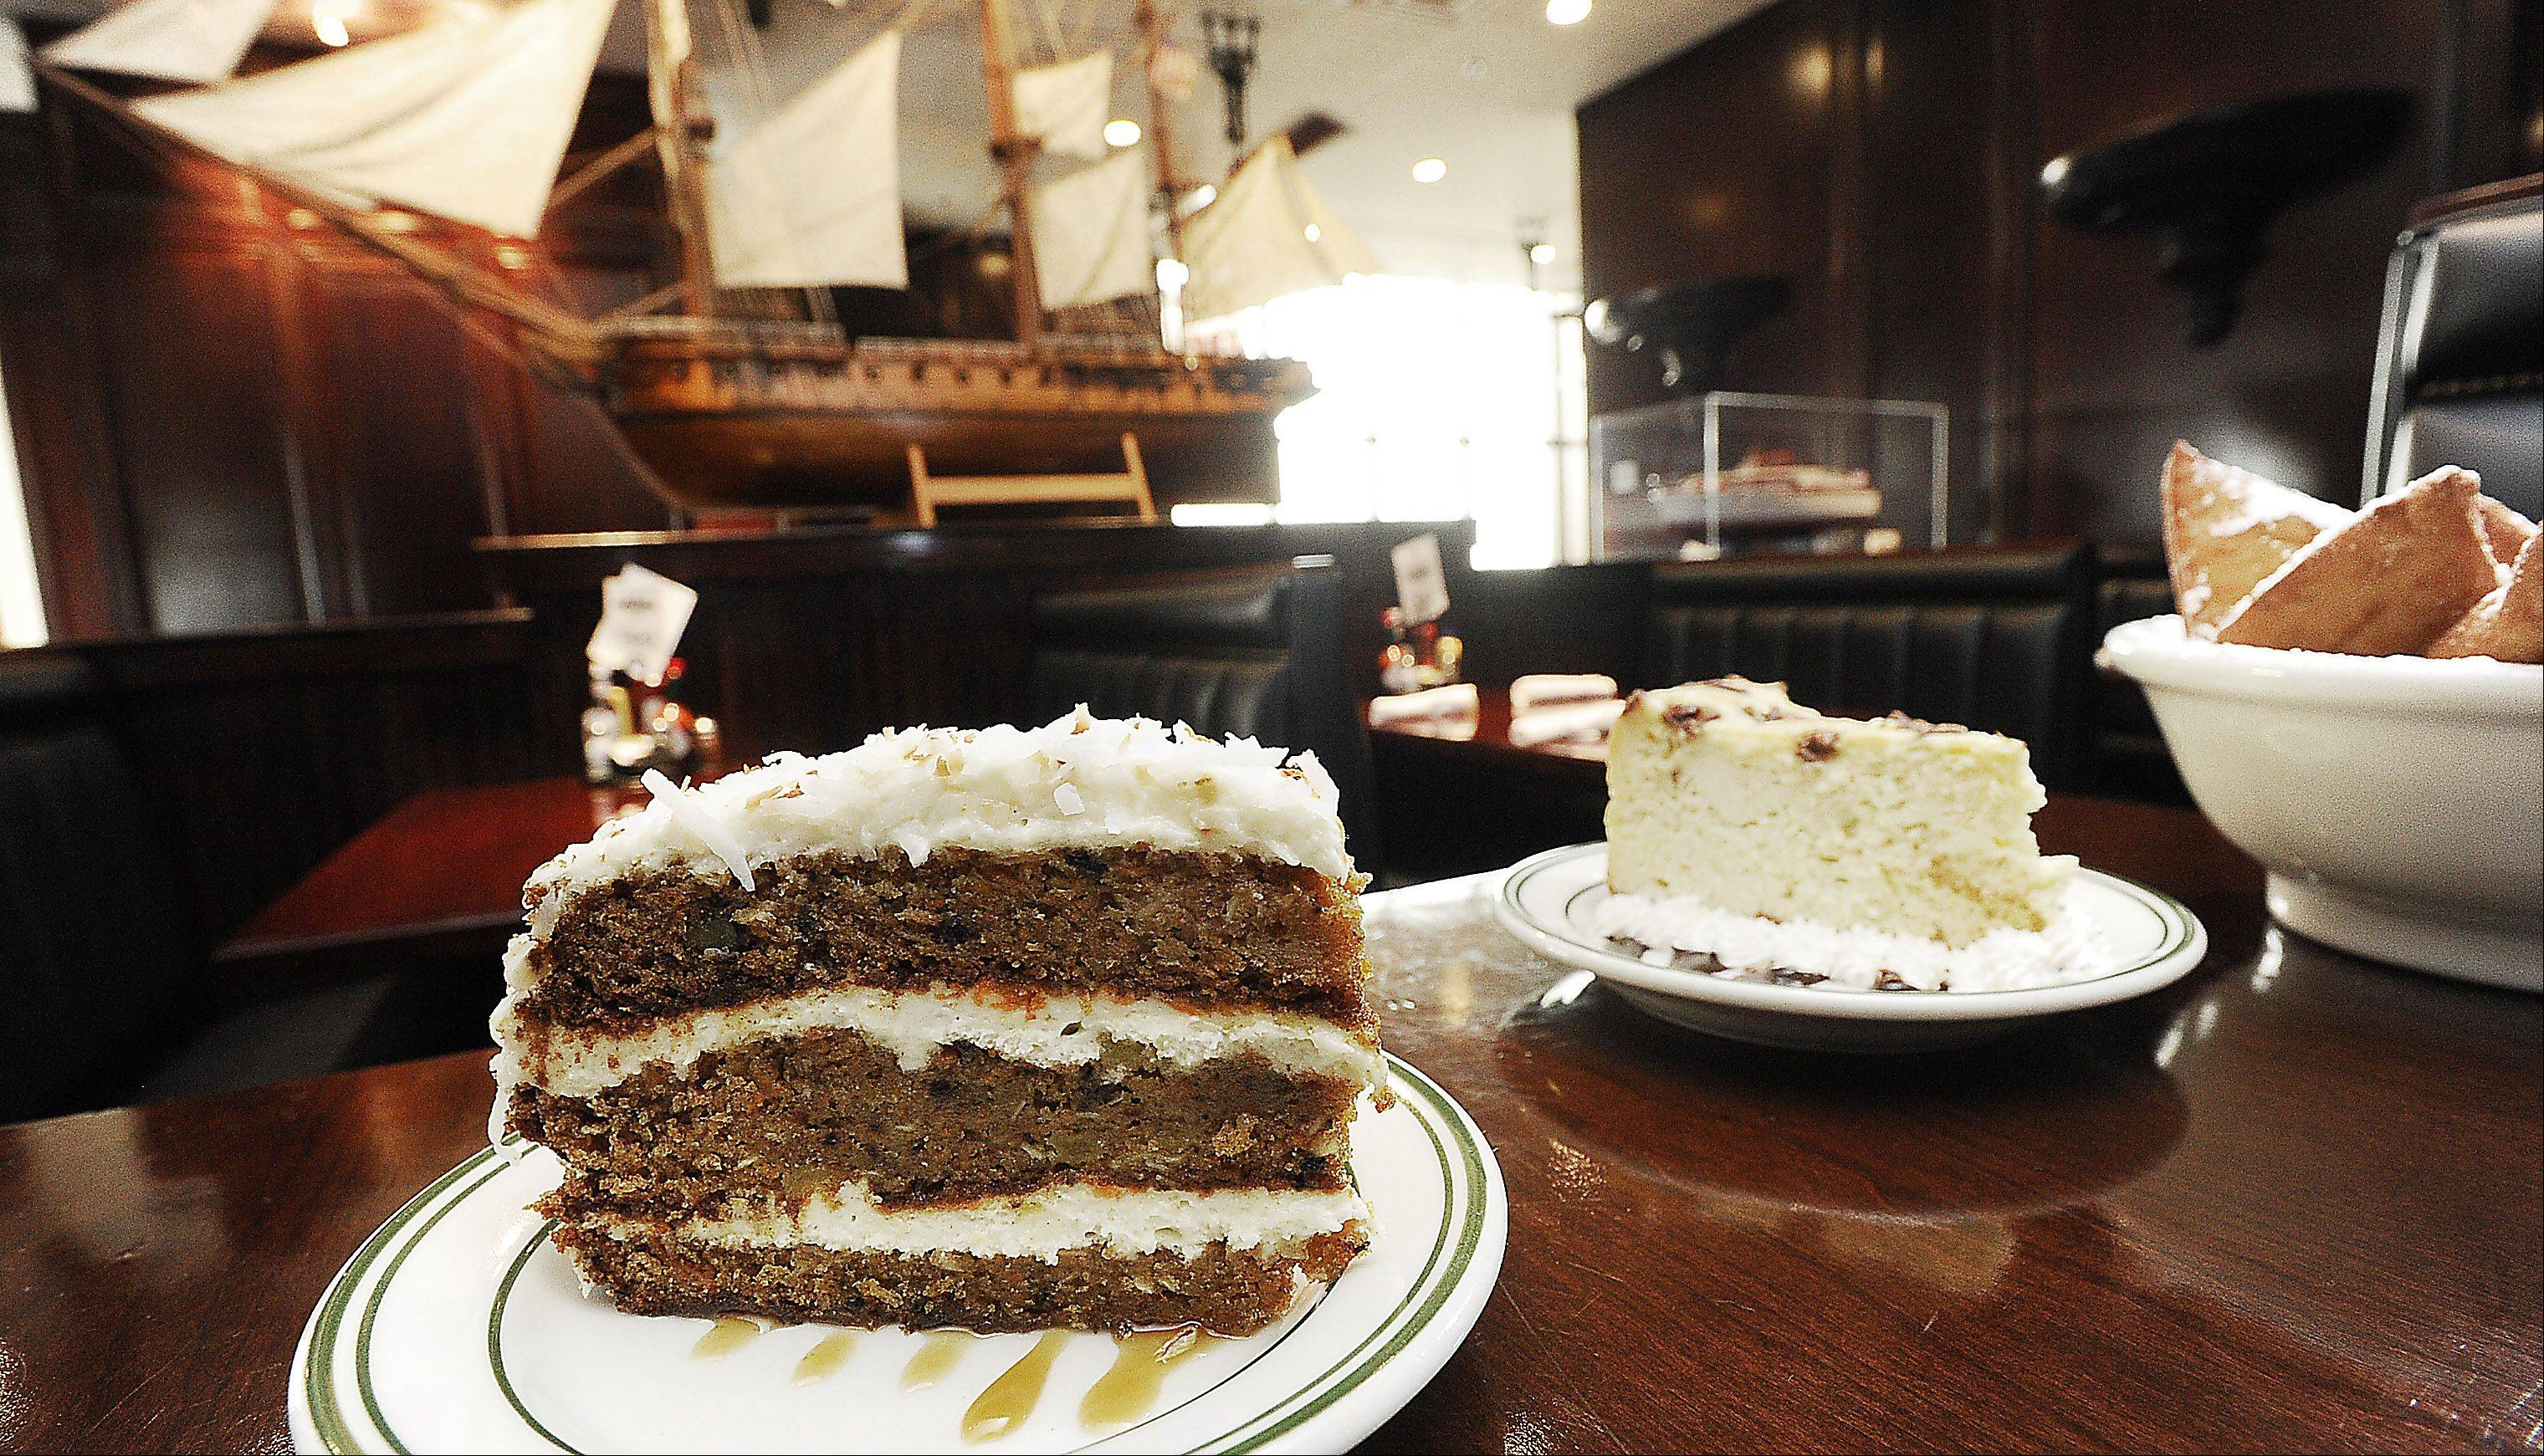 Carrot cake is among the homemade desserts at Stone Eagle Tavern in Hoffman Estates.